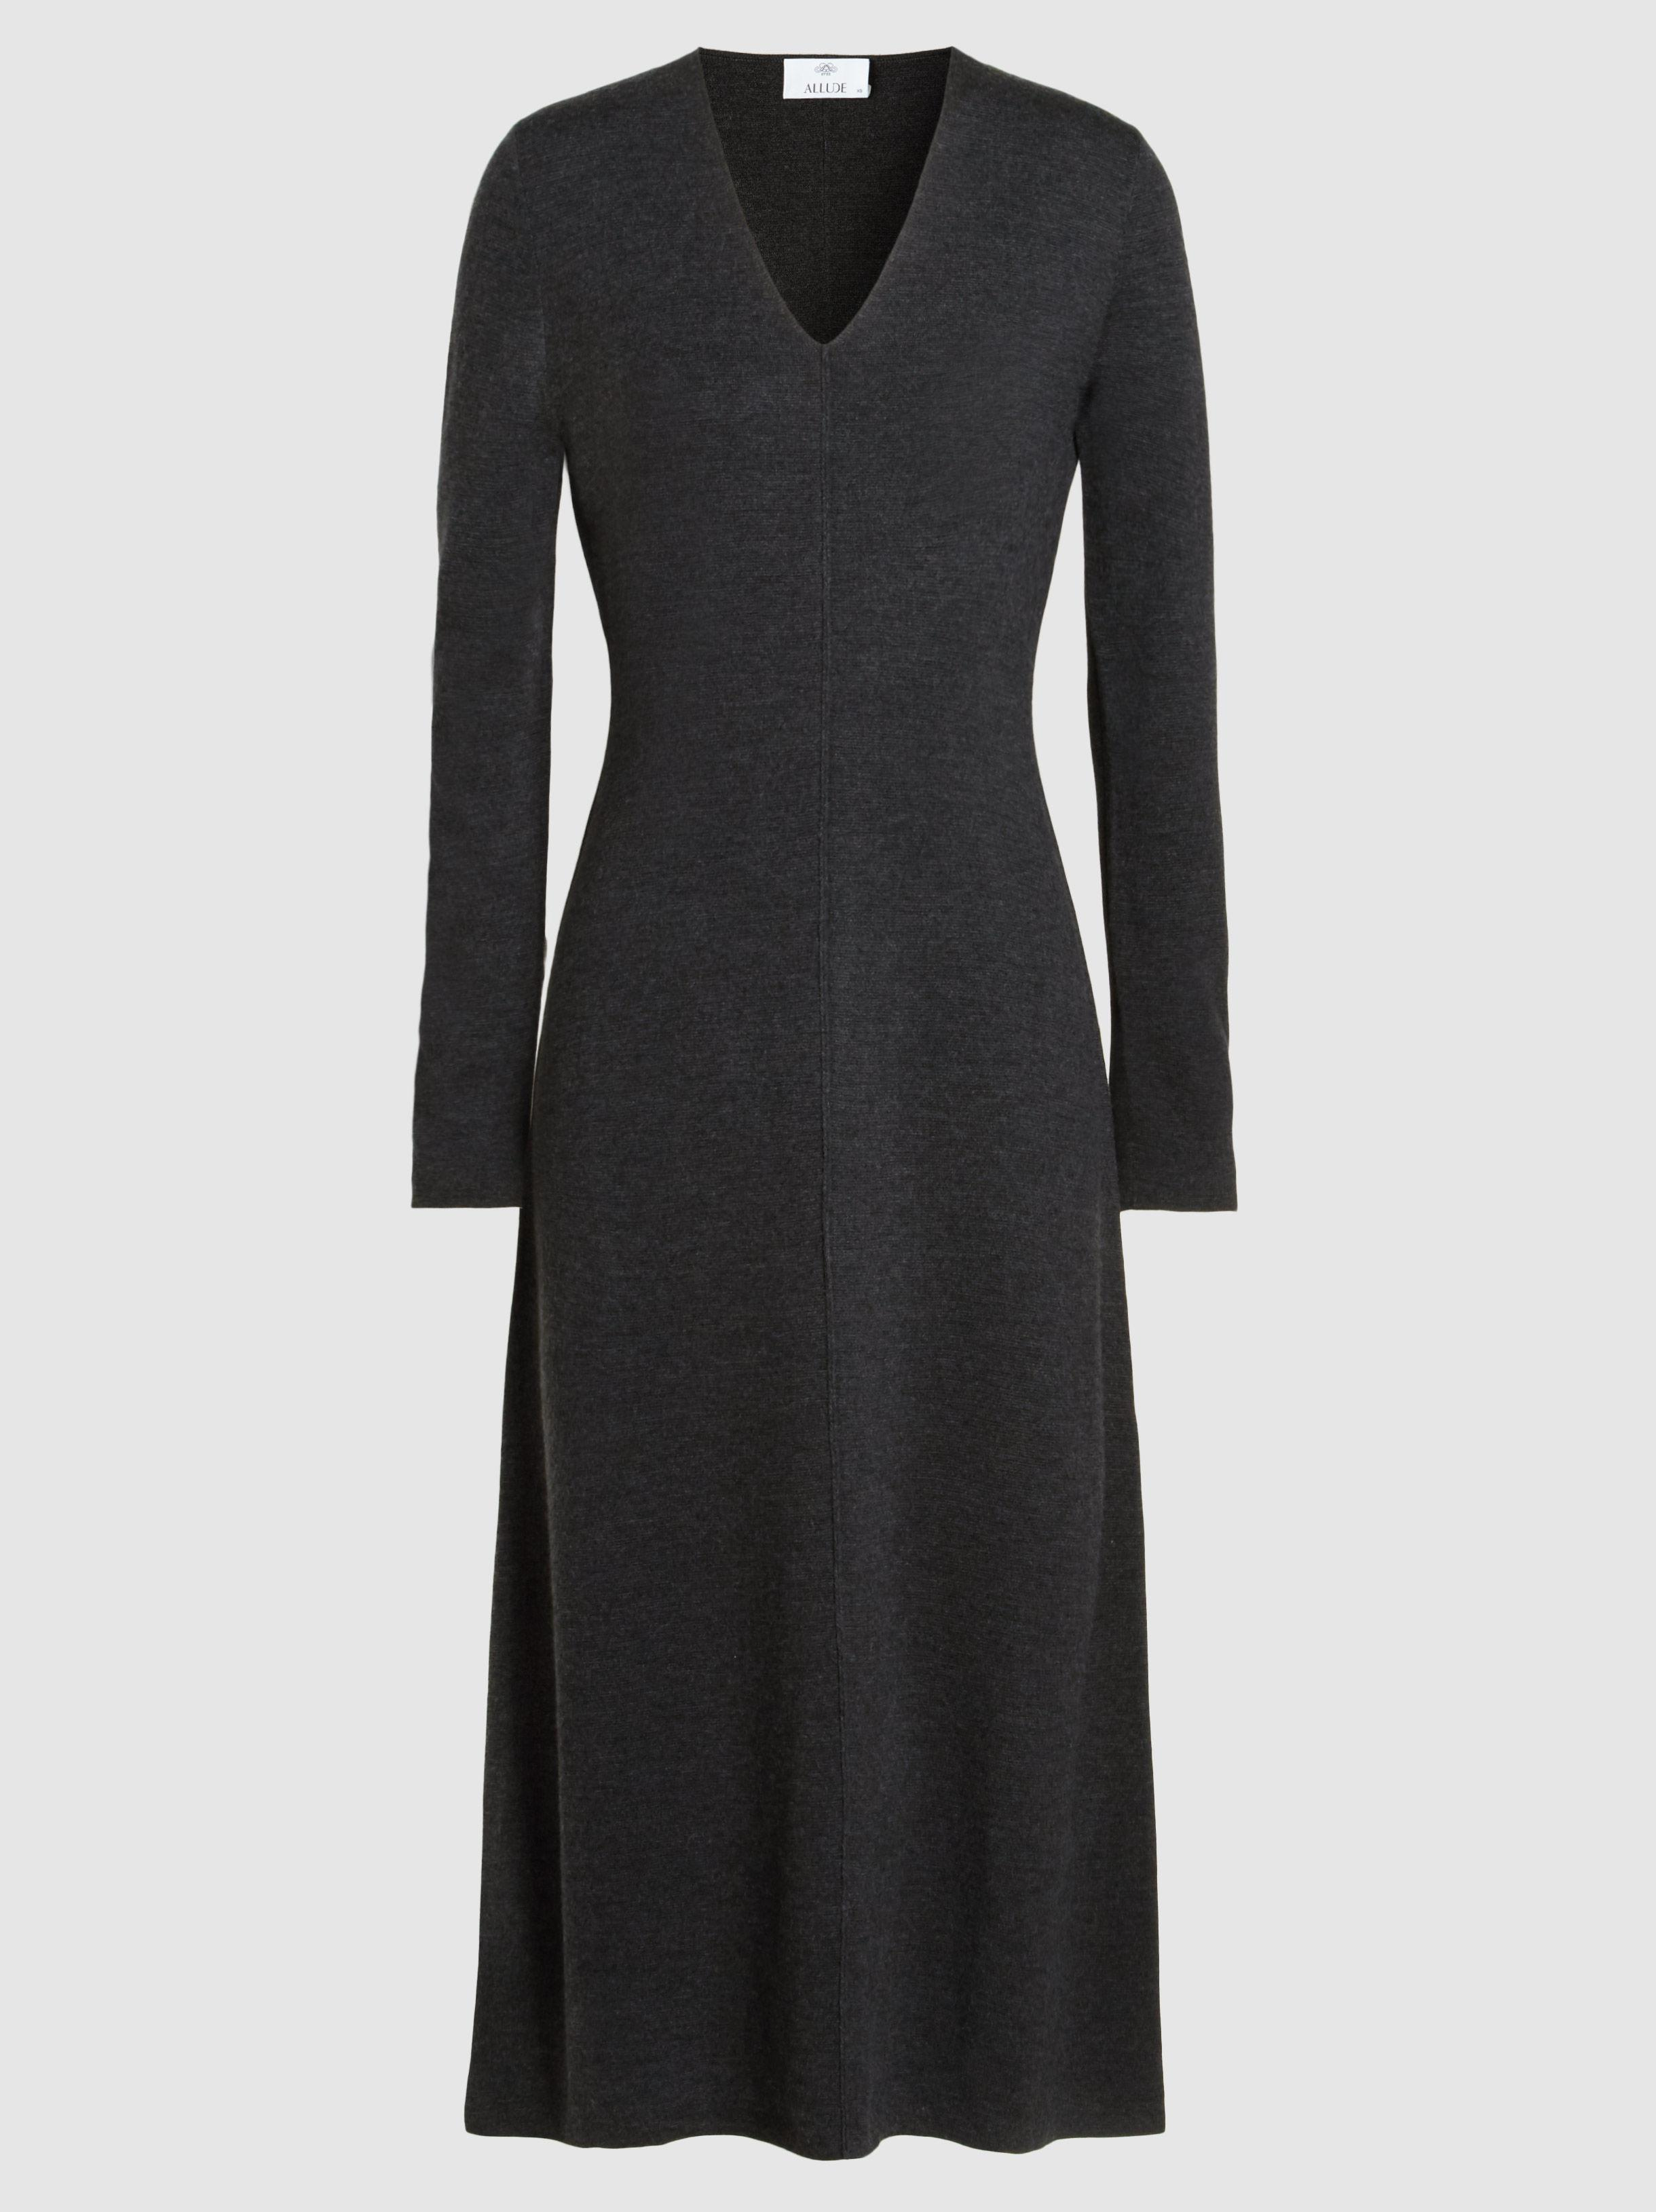 Clearance Cheap Price Clearance Latest Collections A.l.c. Woman Button-detailed Ribbed Merino Wool-blend Midi Dress Black Size XS A.L.C. Lowest Price TYBnQVN